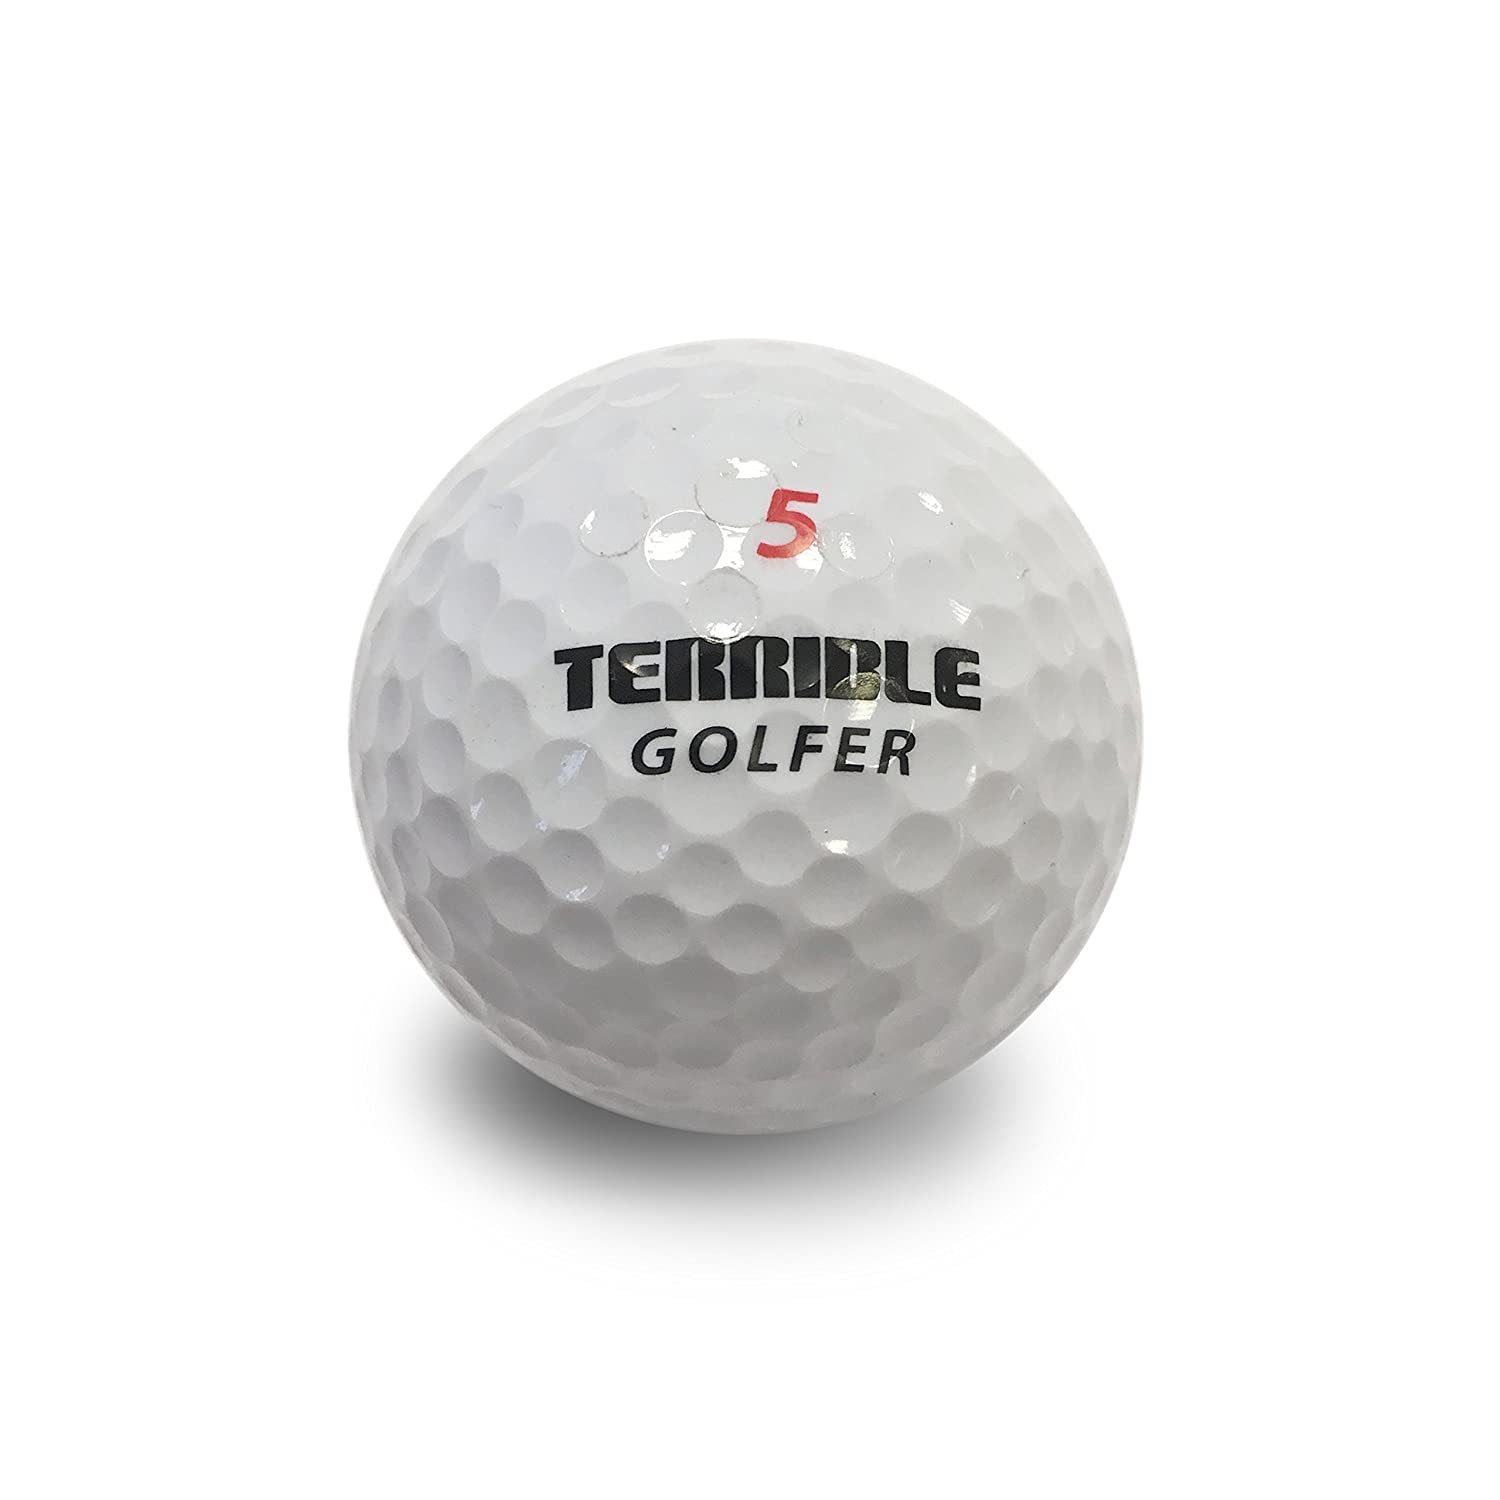 d1a0f5d7 Horrible Golf Balls - Funny Gag Novelty Practice Golf Balls, 6 Balls - Fun  Gift for Golfers: Amazon.co.uk: Sports & Outdoors